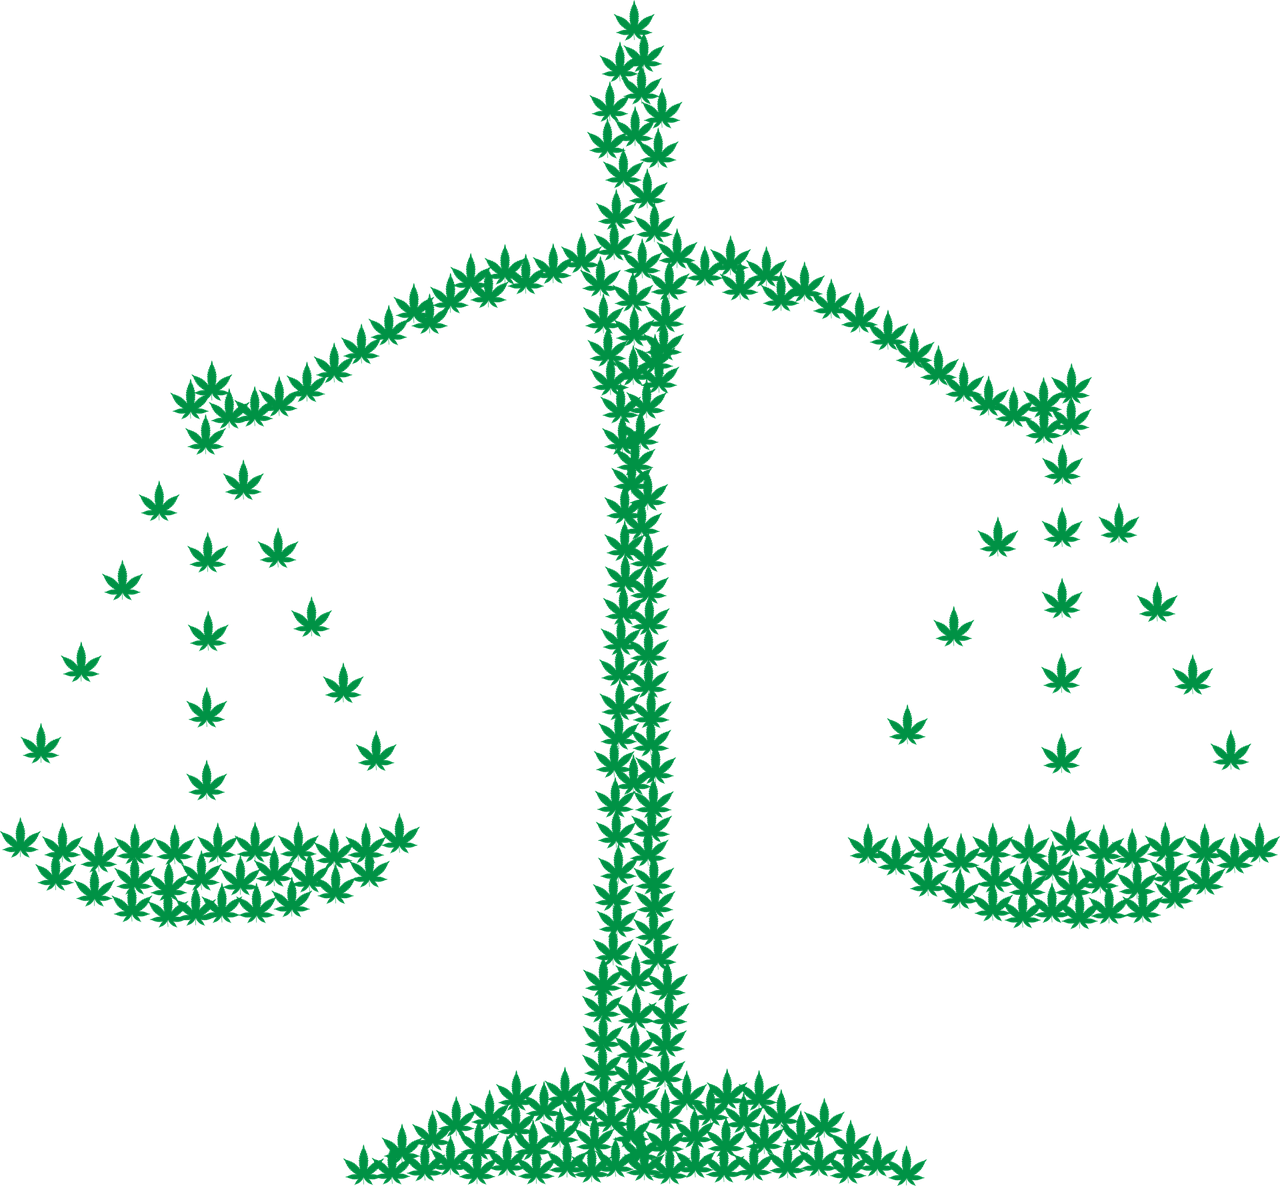 The legal status of CBD in the US